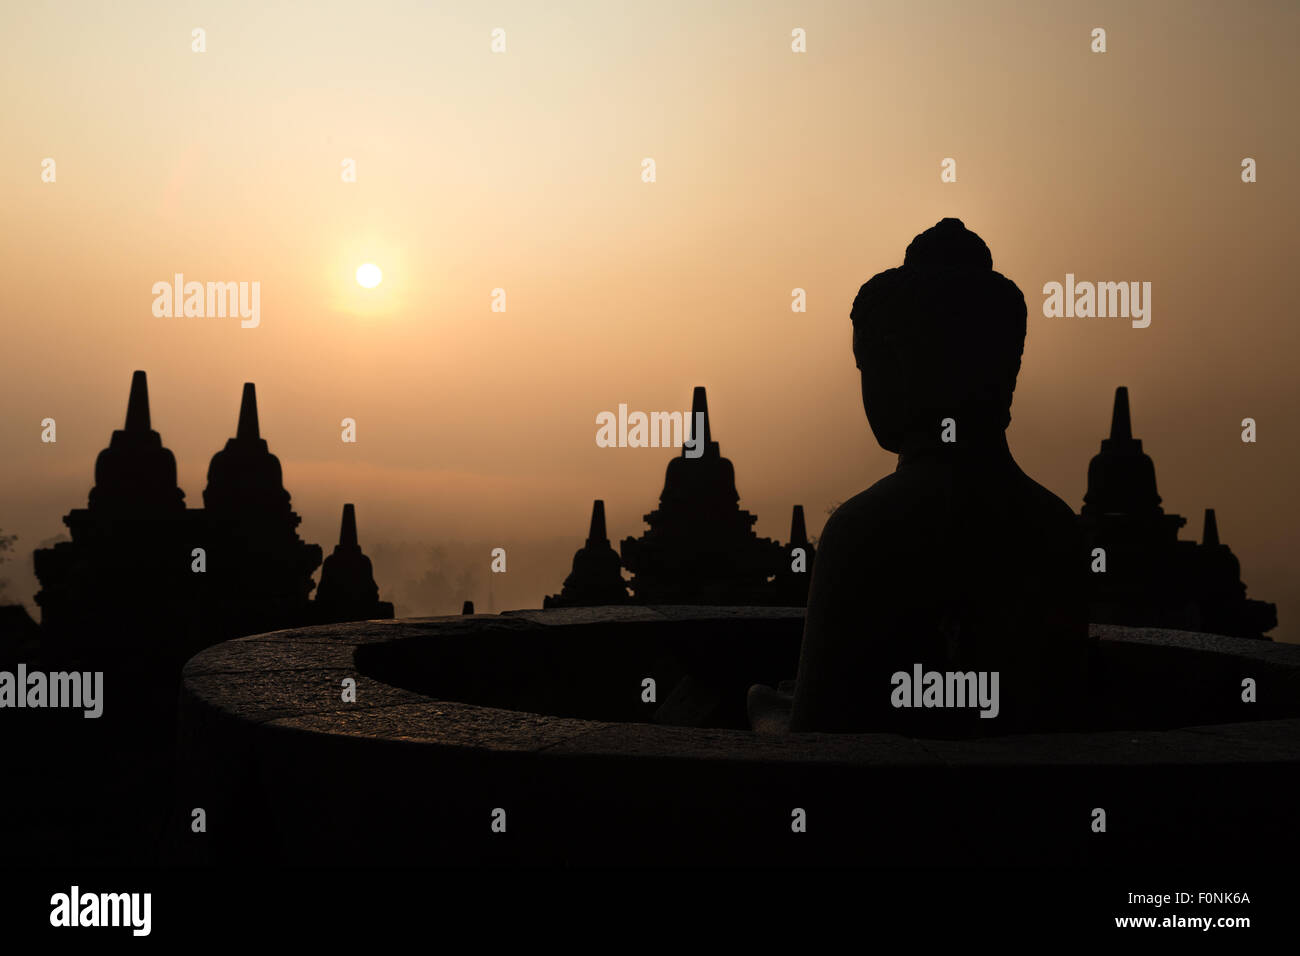 Silhouettes of a Buddha statue at the Unesco world heritage site the Borobudur temple at dawn on the island of Java, - Stock Image